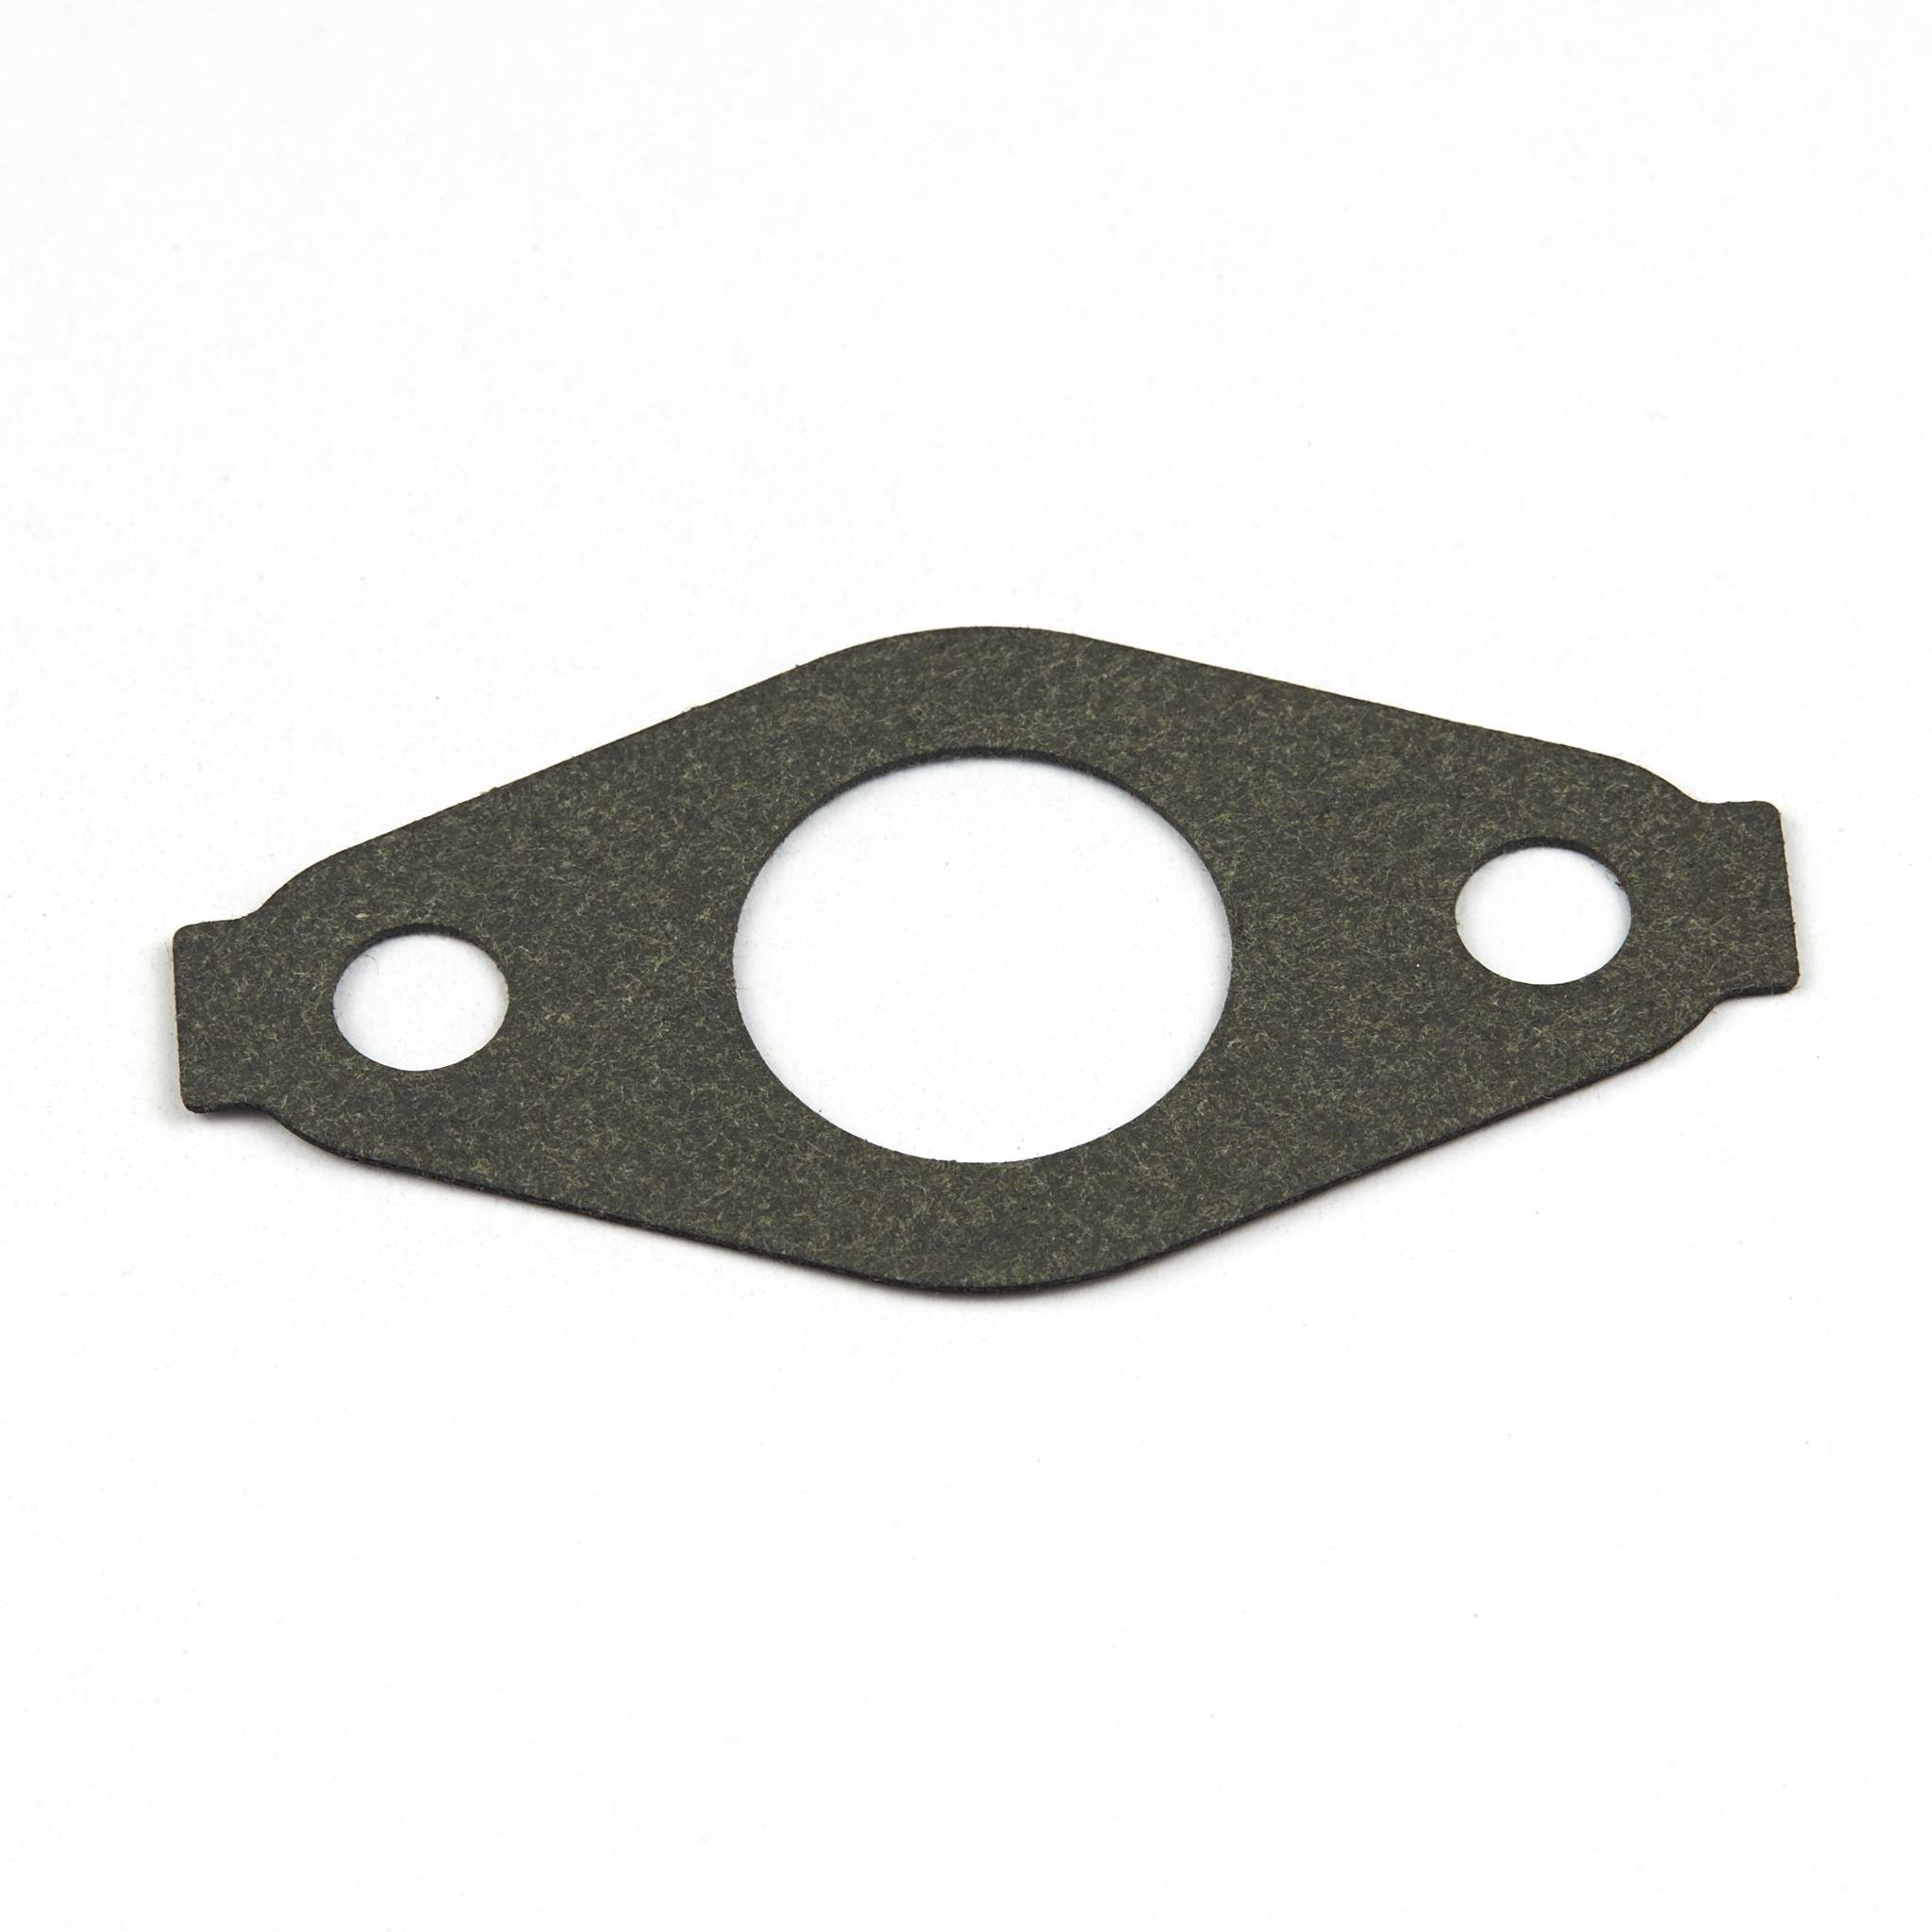 Briggs & Stratton 692555 Intake Gasket Replacement for Model 273437